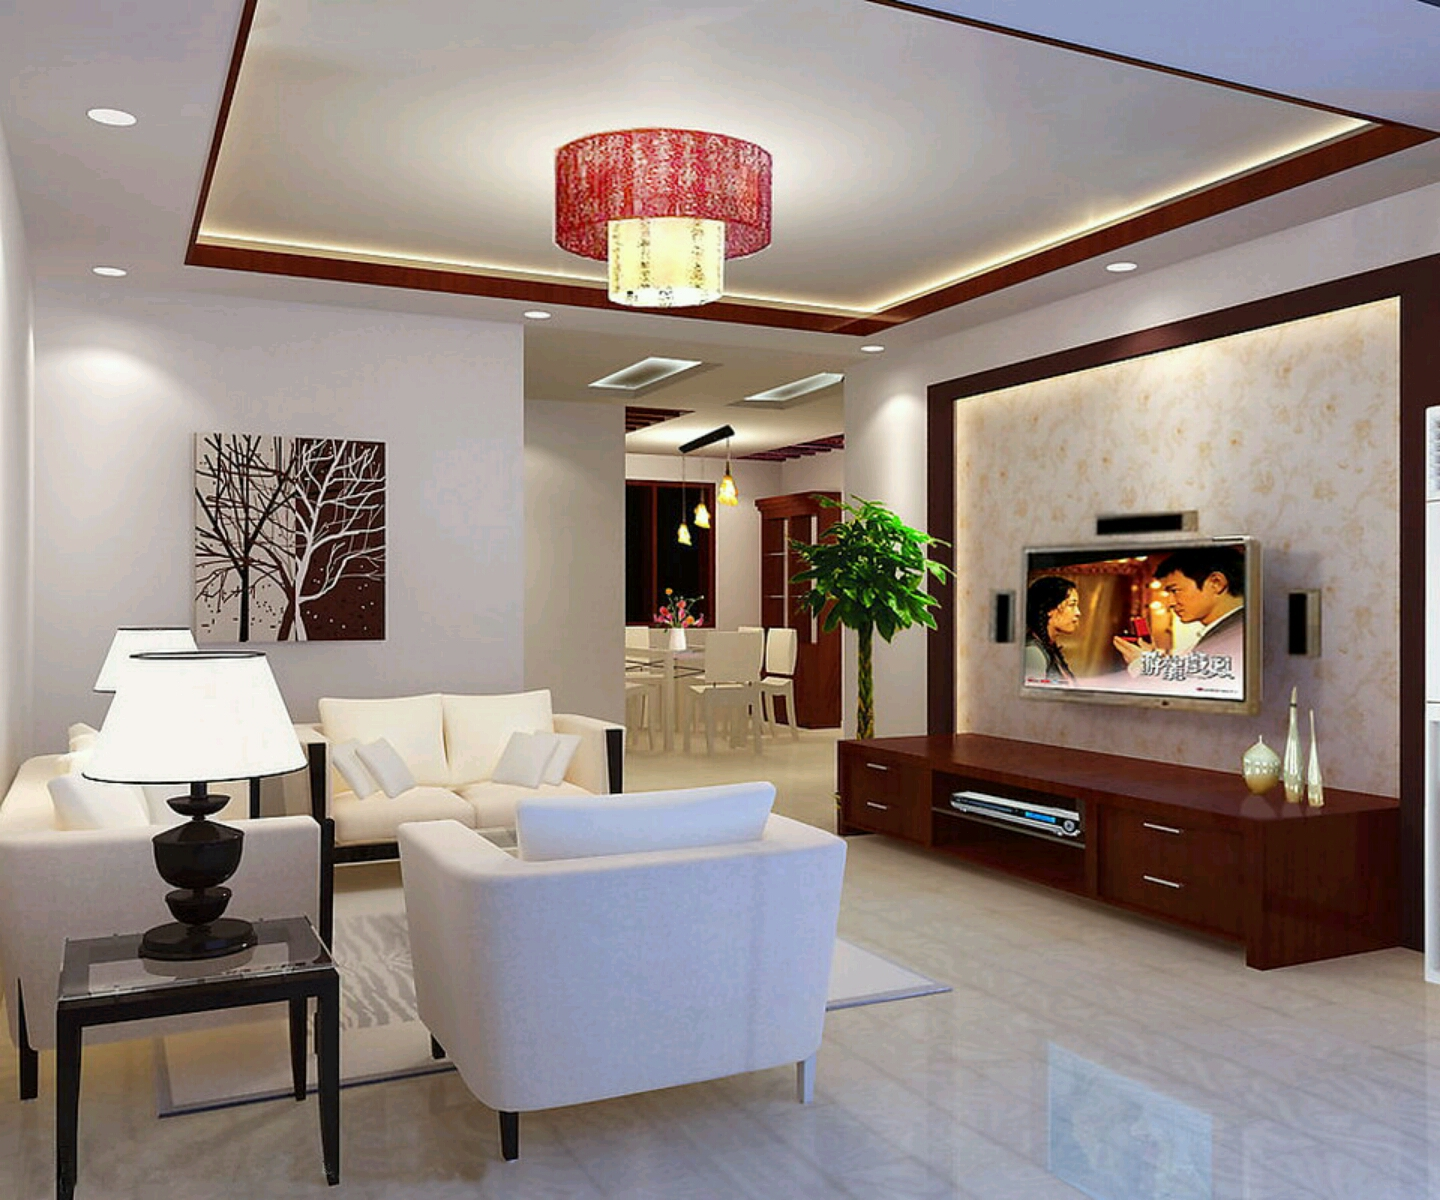 Modern interior decoration living rooms ceiling designs ideas new home designs Contemporary interior home design ideas